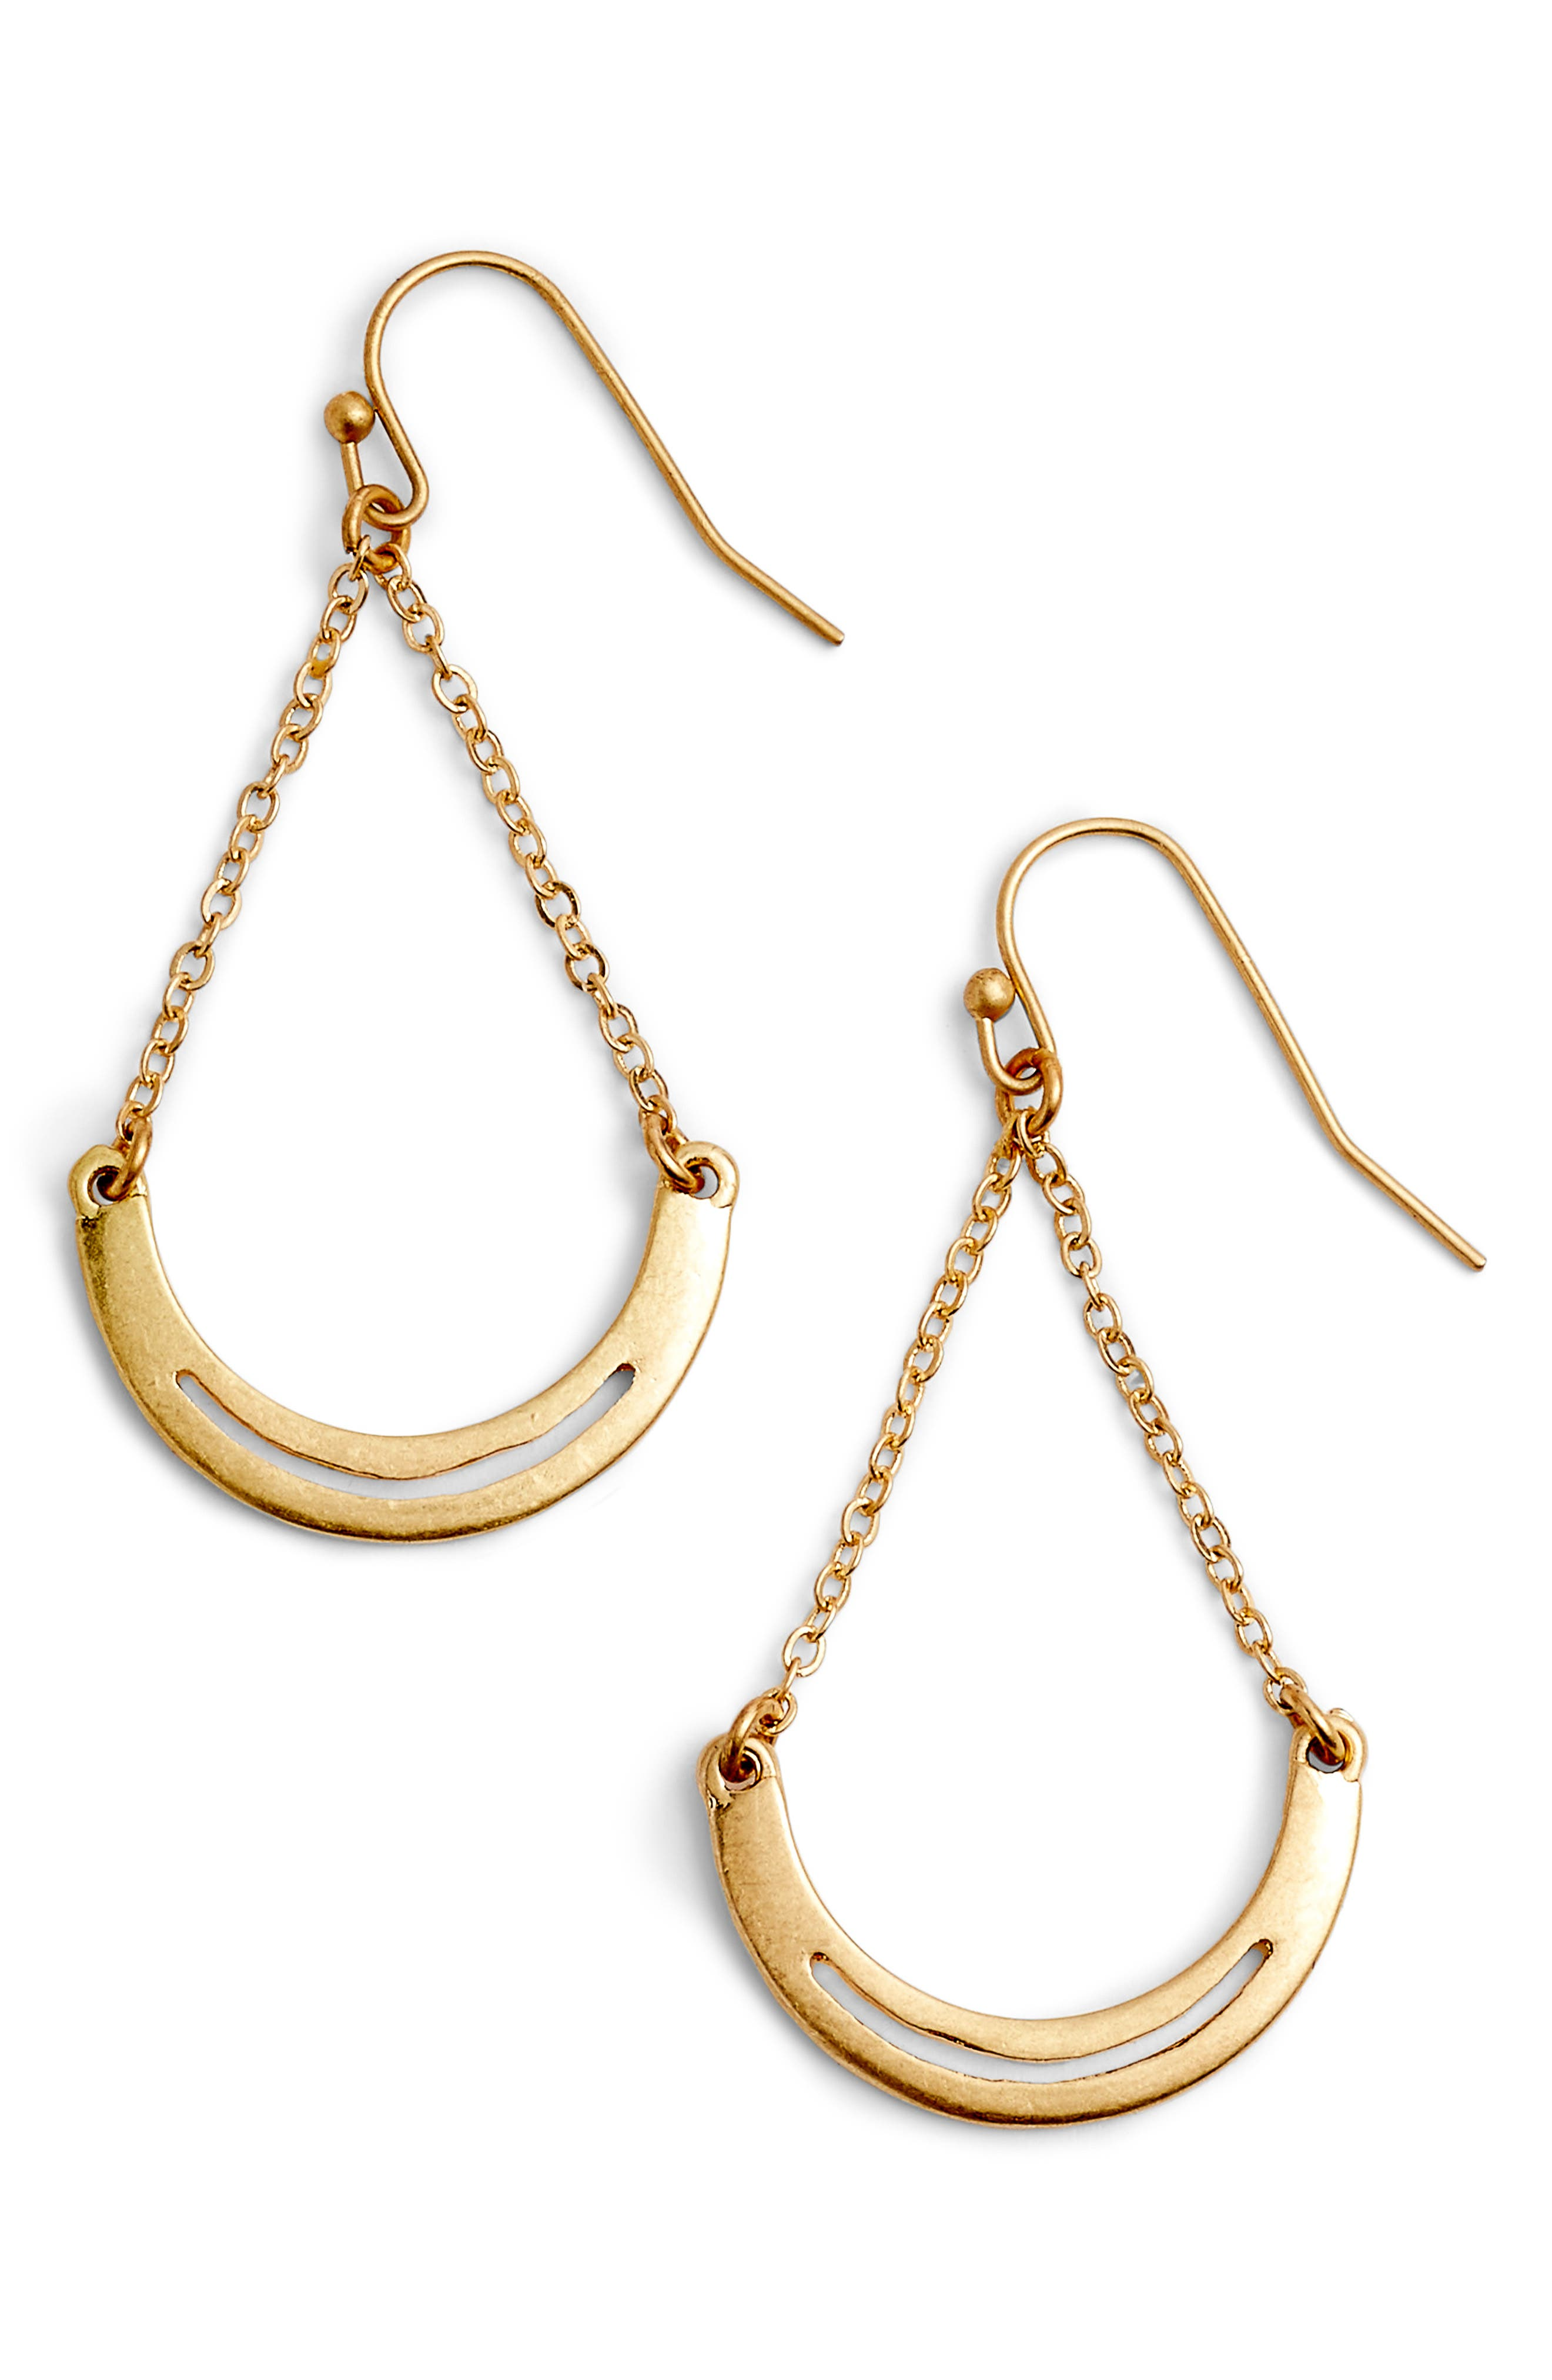 Cutout Arch Trapeze Earrings,                             Main thumbnail 1, color,                             710